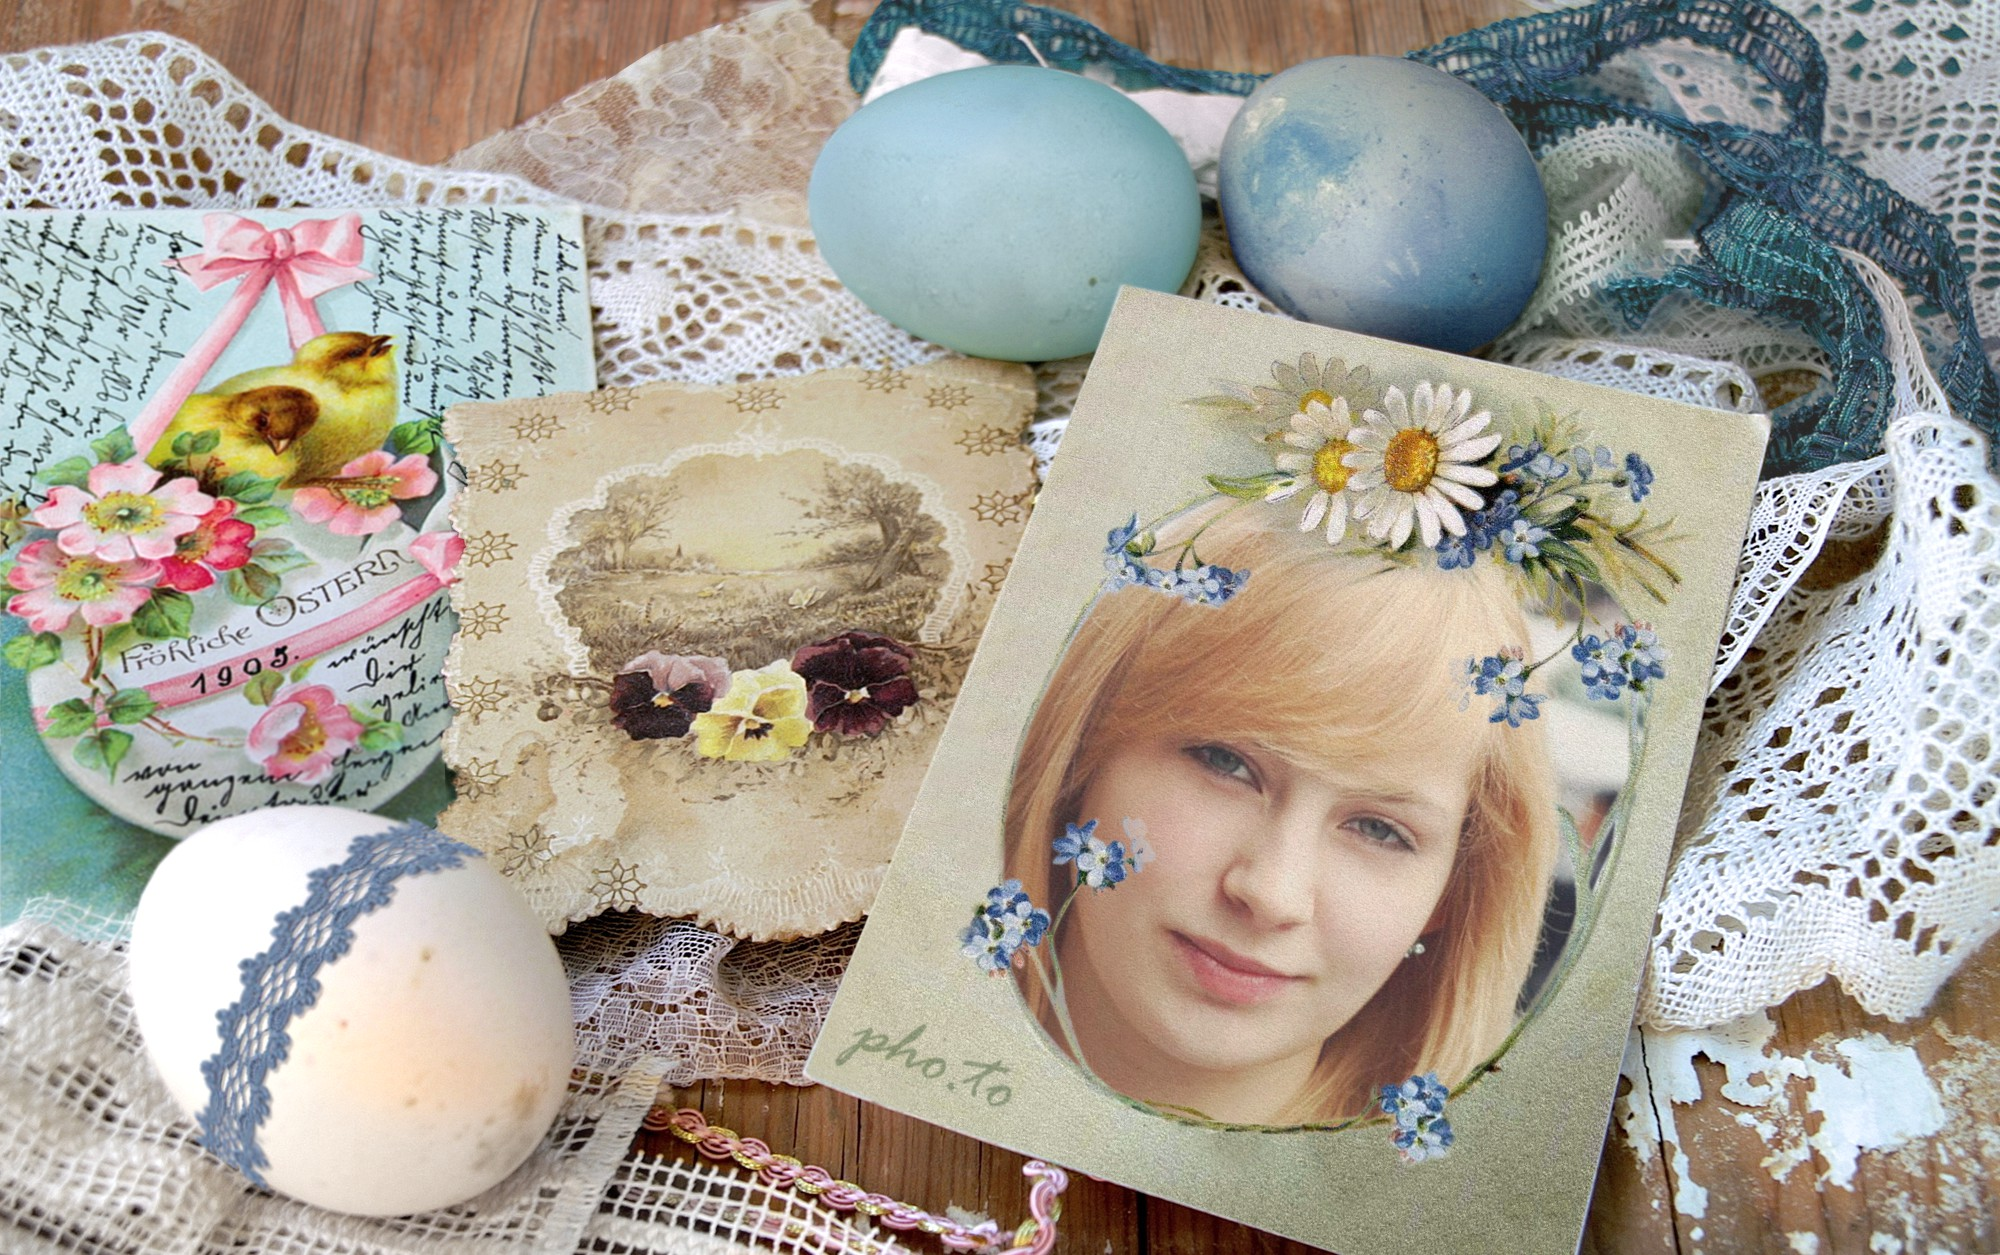 Imitation of retro Easter card created with photo effect online